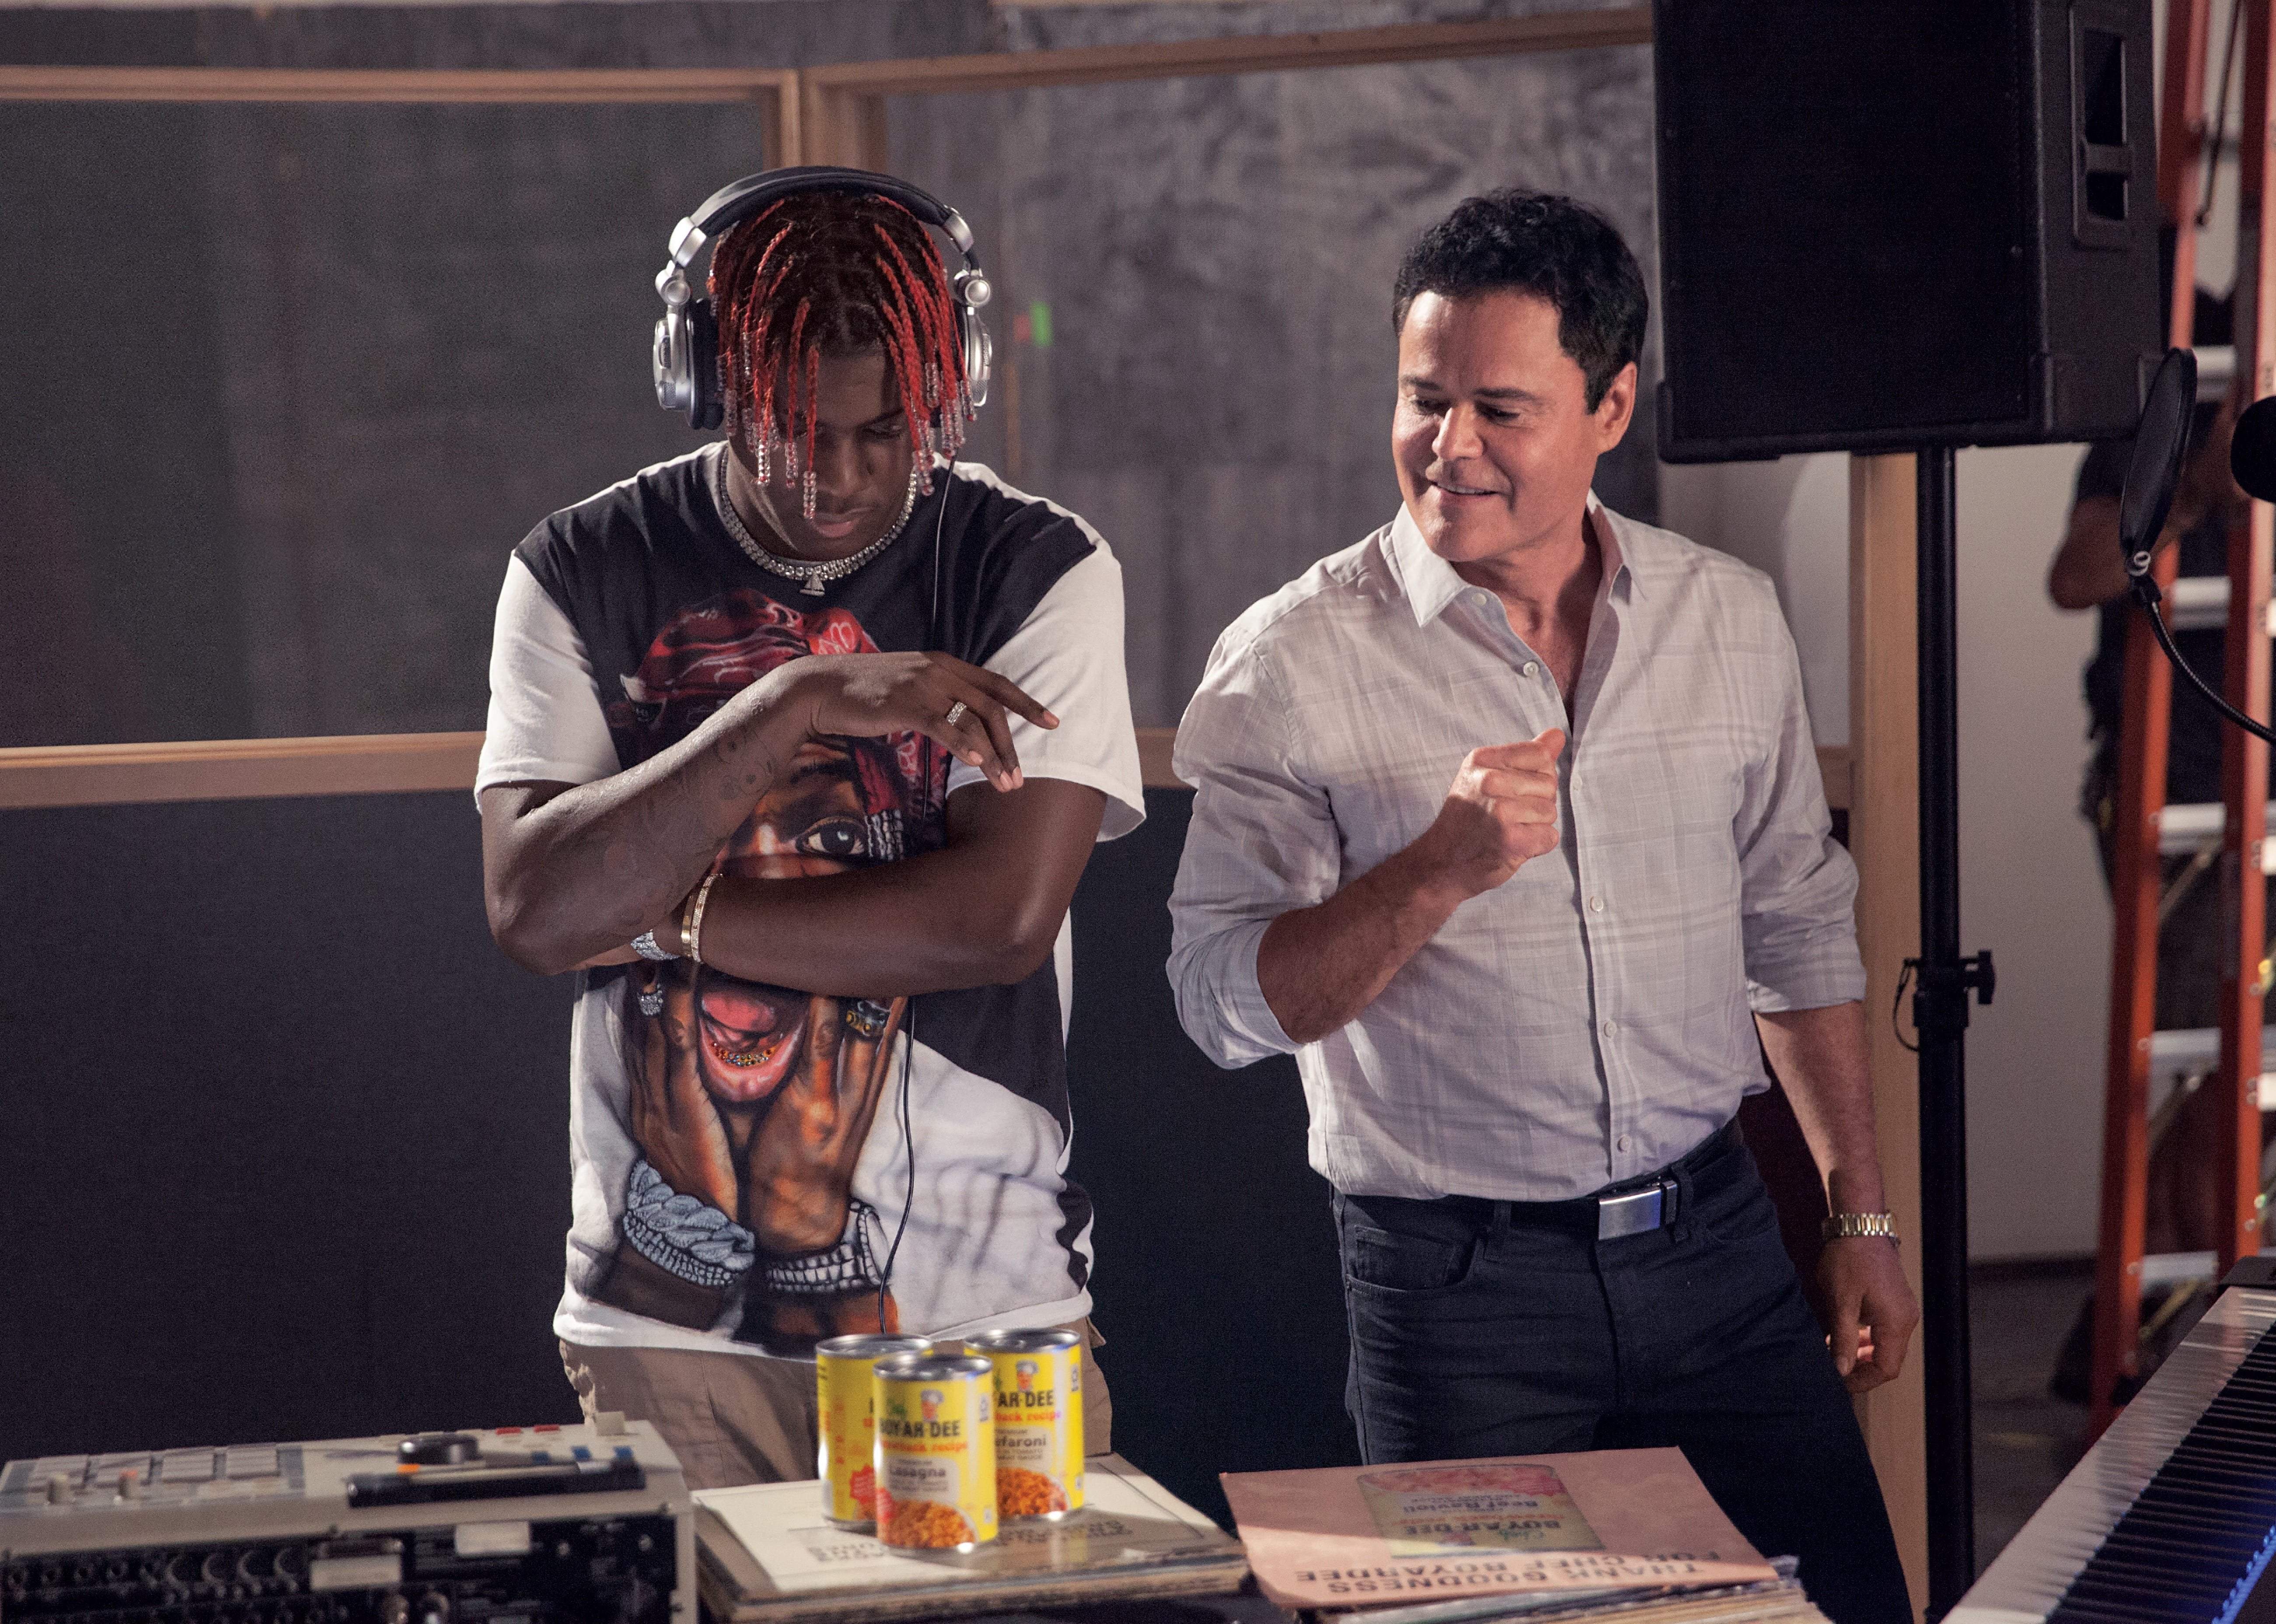 Lil Yachty and Donny Osmond record a jingle for Chef Boyardee.